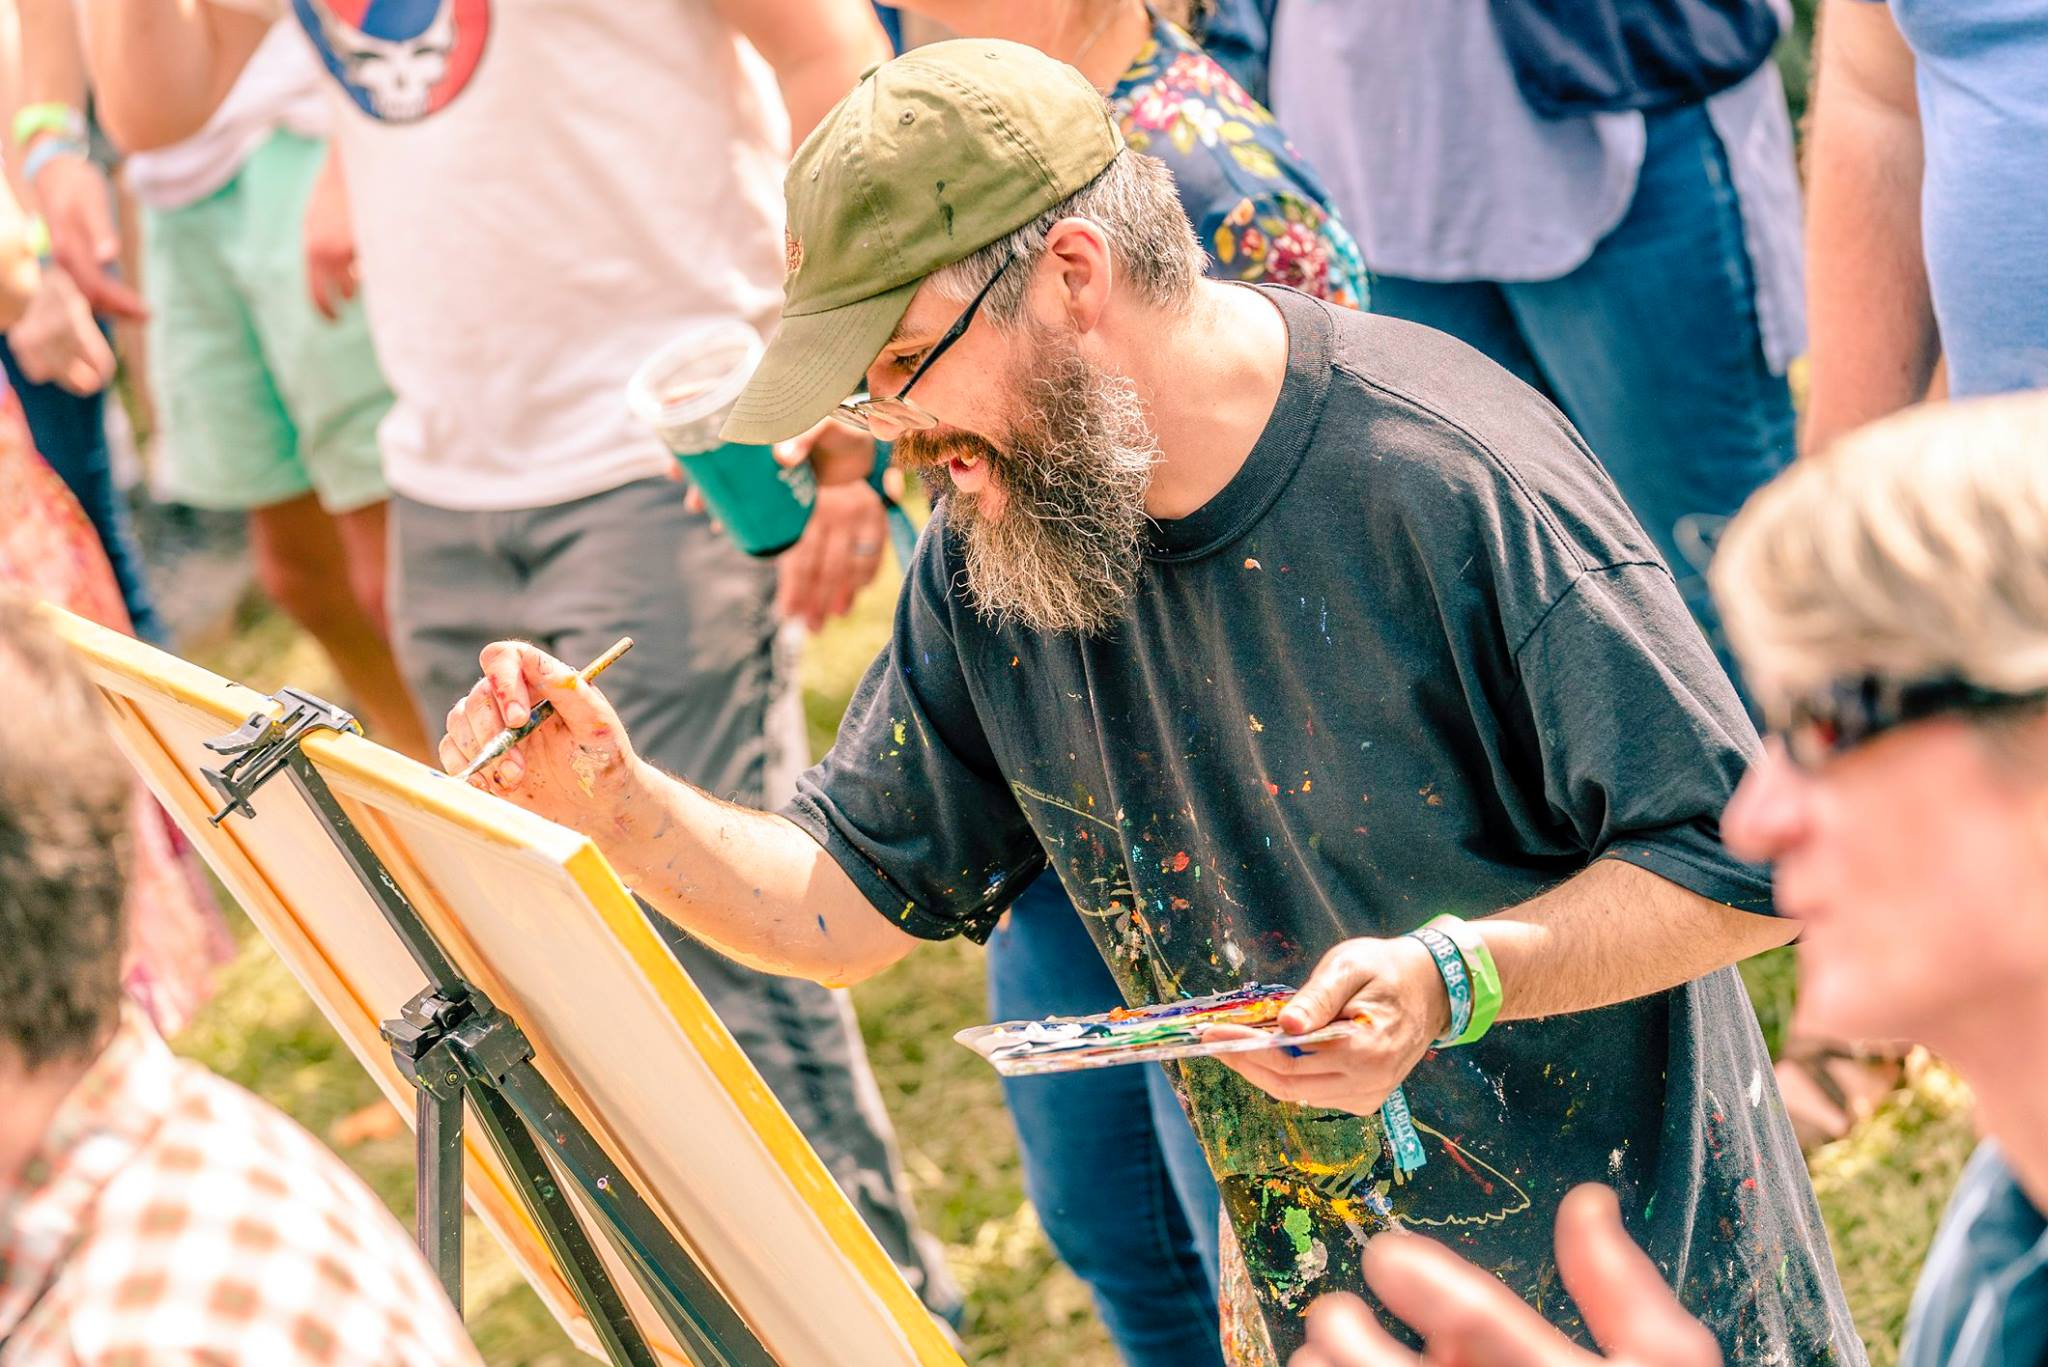 Sean painting at Charm City Bluegrass